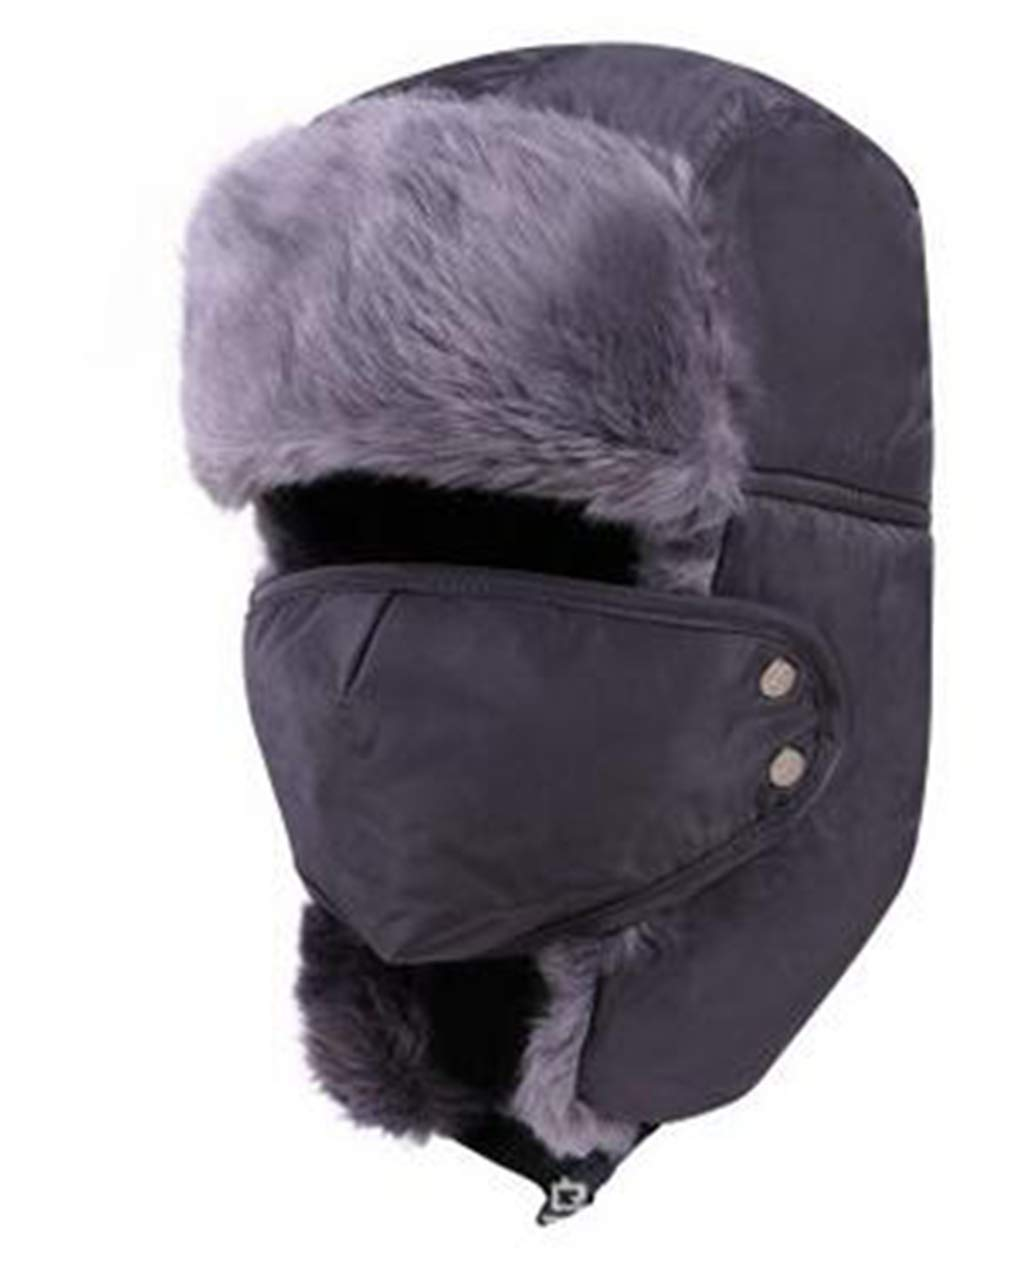 a5e2238c63f Get Quotations · Trooper Trapper Hat Winter Windproof Ski Hat with Ear  Flaps and Mask Warm Hunting Fashion Hats